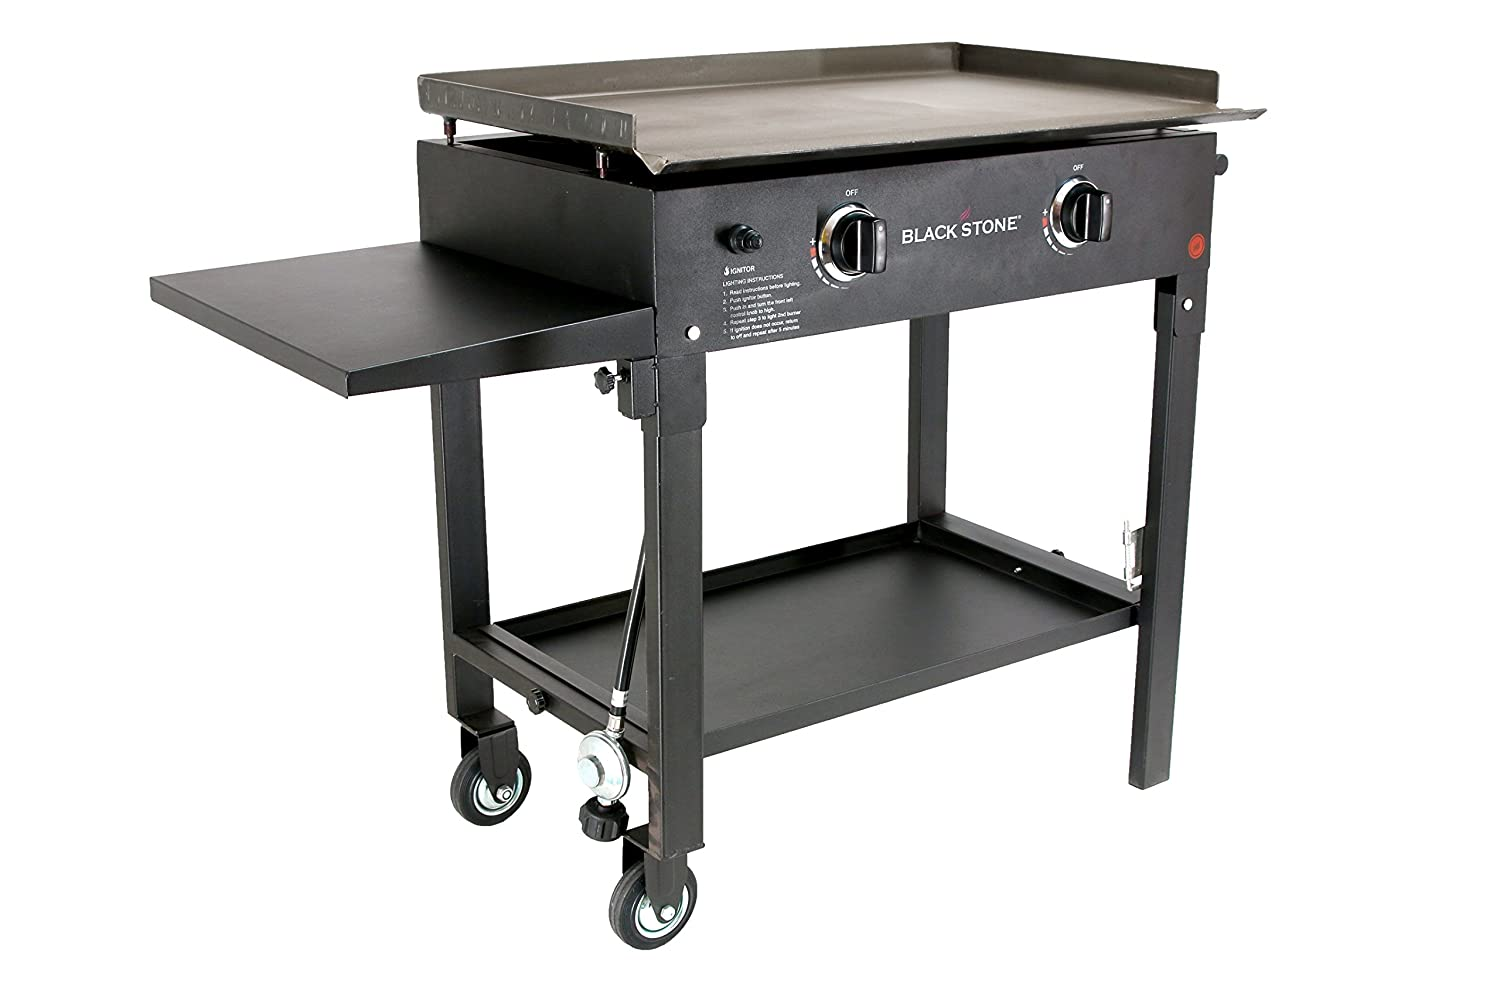 Outdoor Griddle Grill ~ Outdoor grills with griddles images